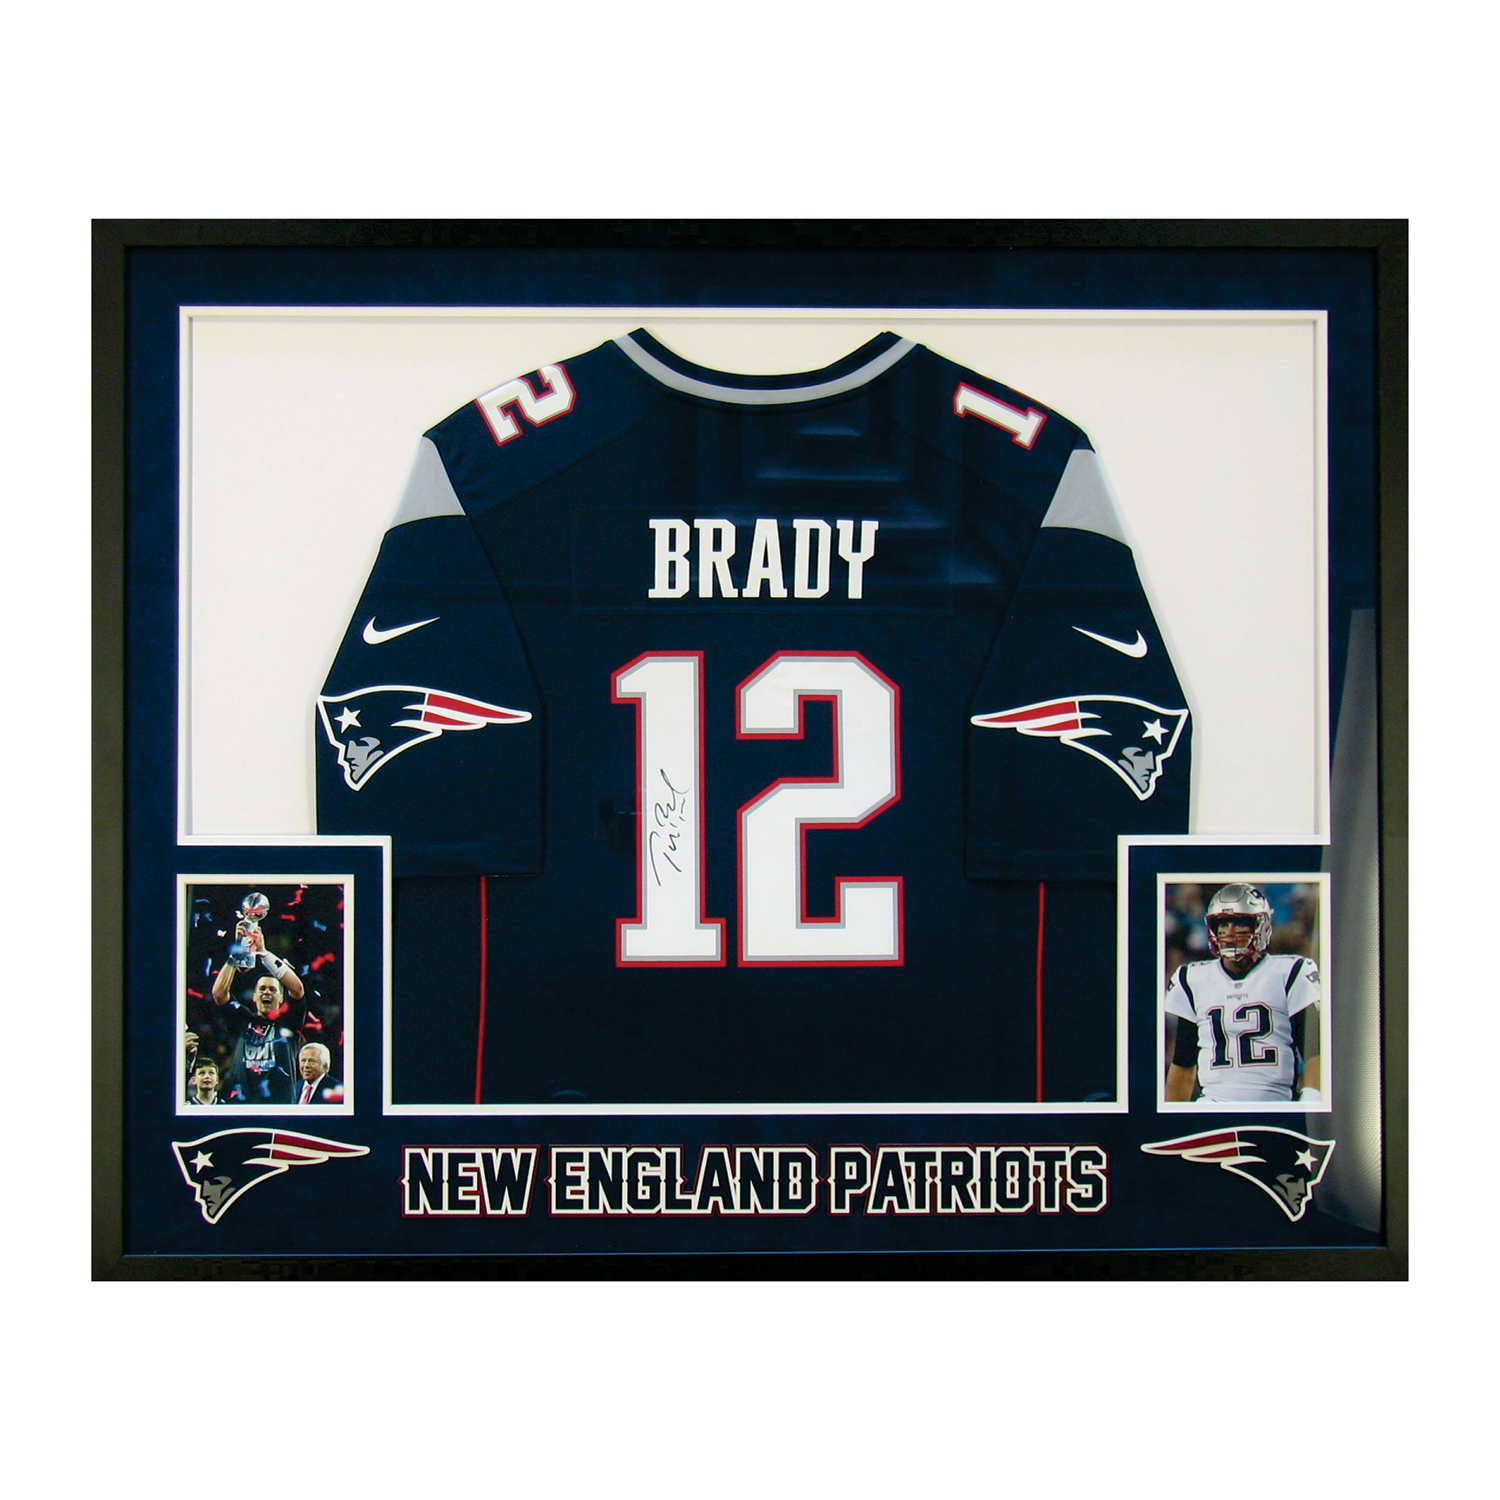 cheaper 80d0a fb4e2 Signed Jersey // Tom Brady - CLEARANCE: Just For Fun - Touch ...